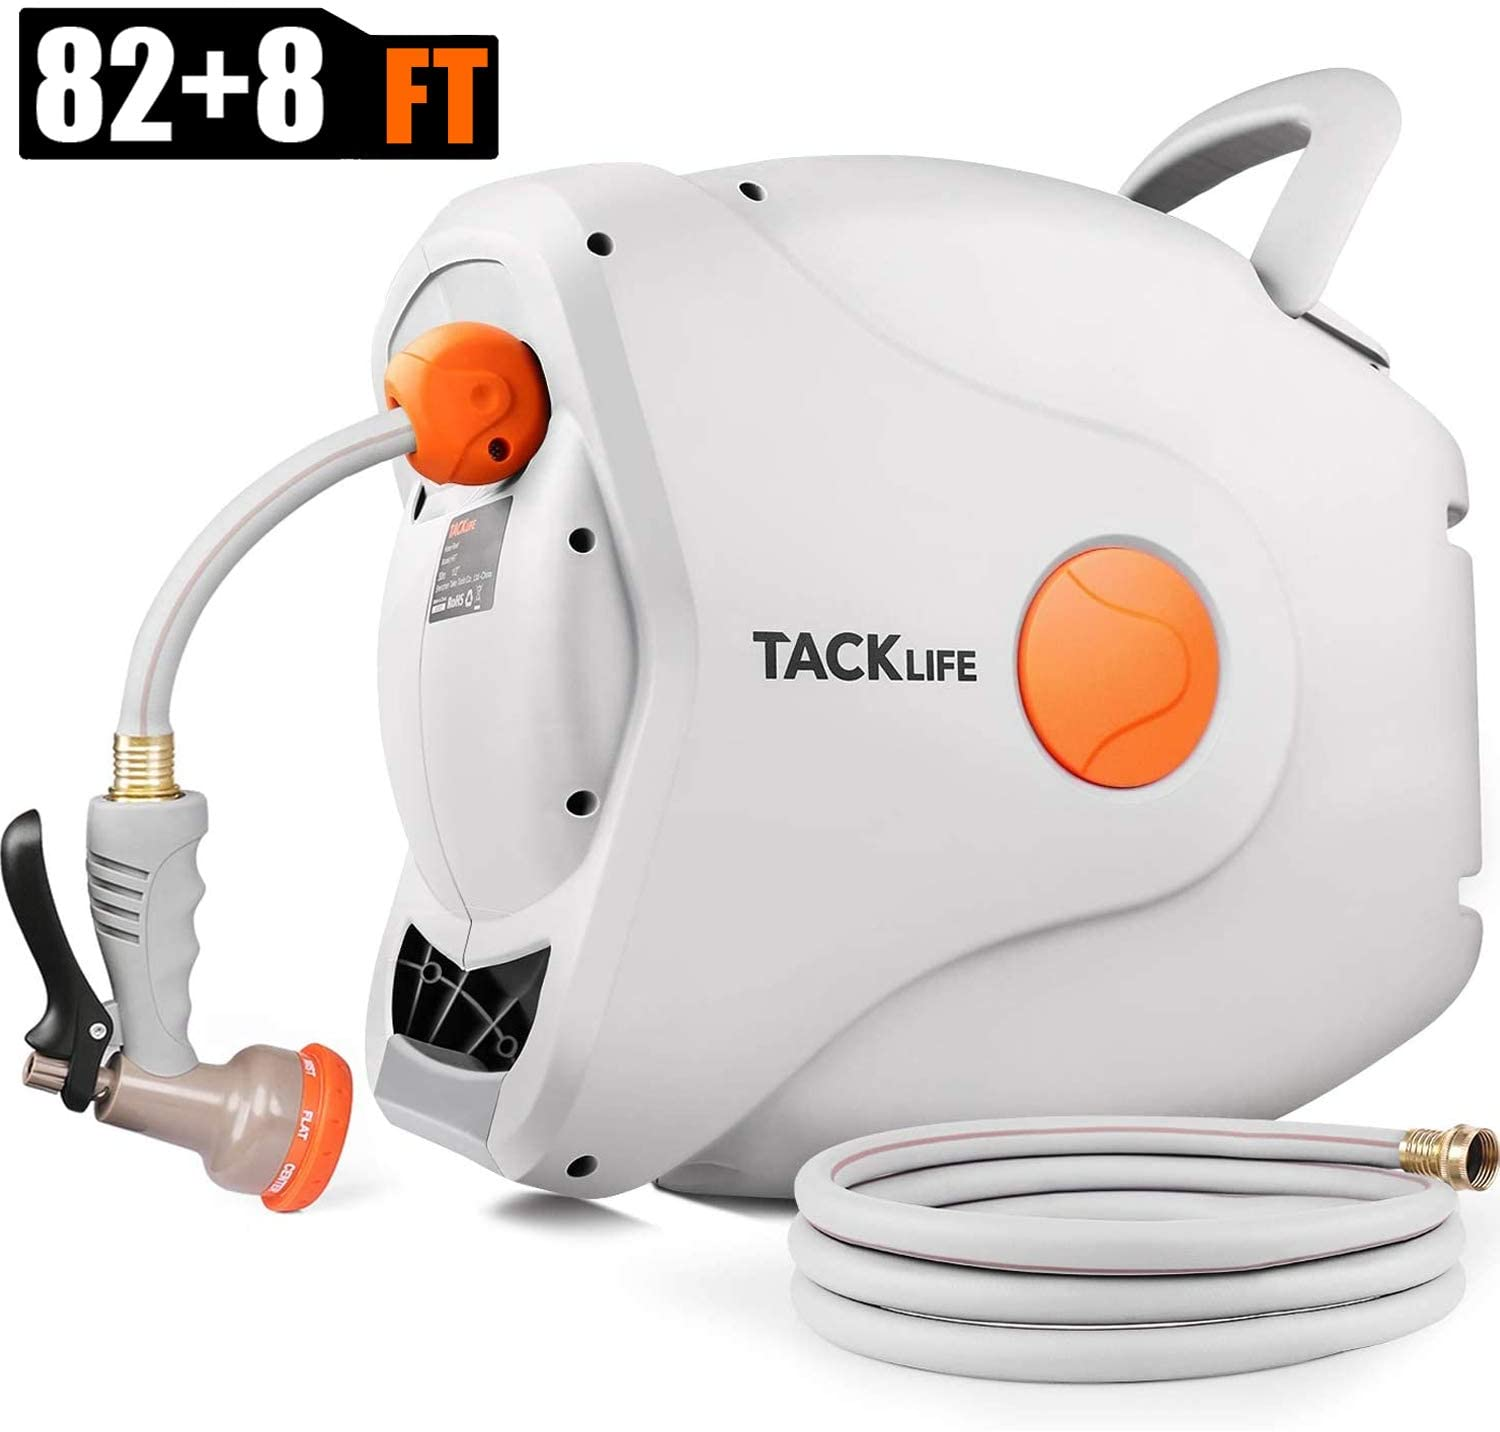 TACKLIFE 5/8'' Retractable Hose Reel, Wall Retractable Hose Reel